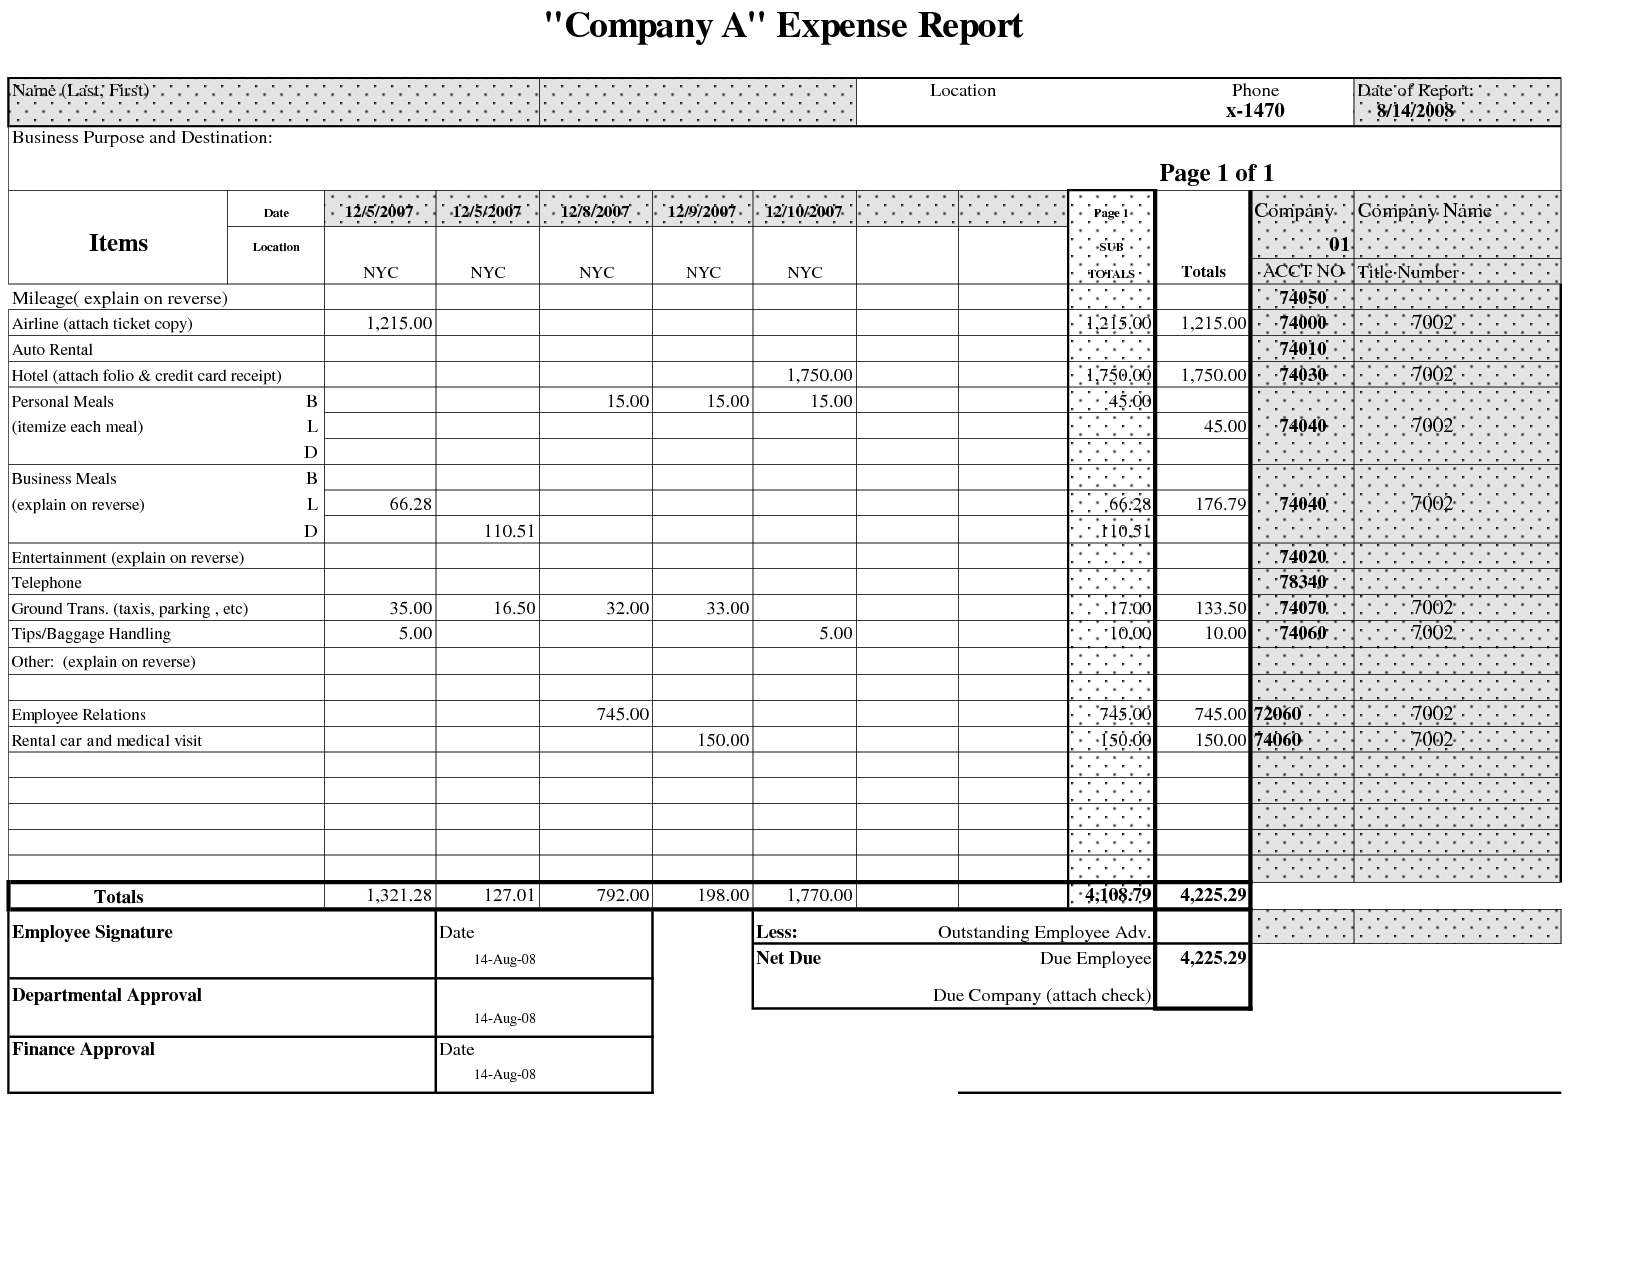 Expense Report Spreadsheet Template Free Intended For Expense Report Spreadsheet Template Awesome Excel New Expenses